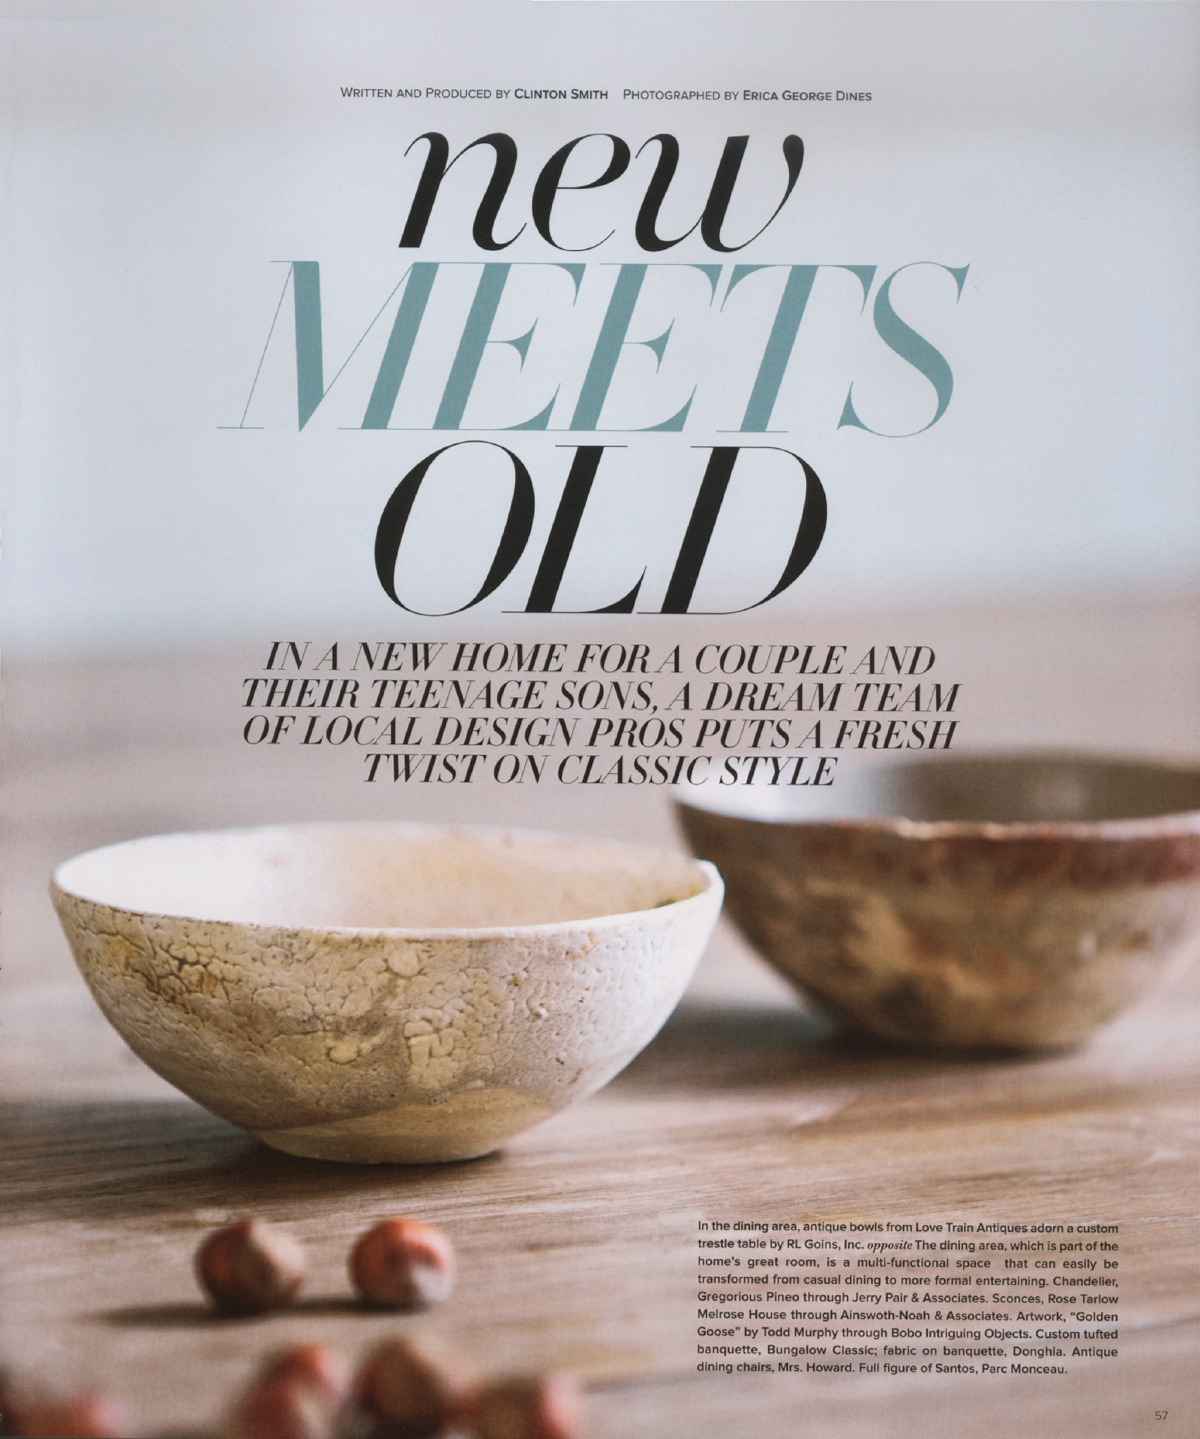 New Meets Old - Published in Atlanta Homes & Lifestyles, October 2010